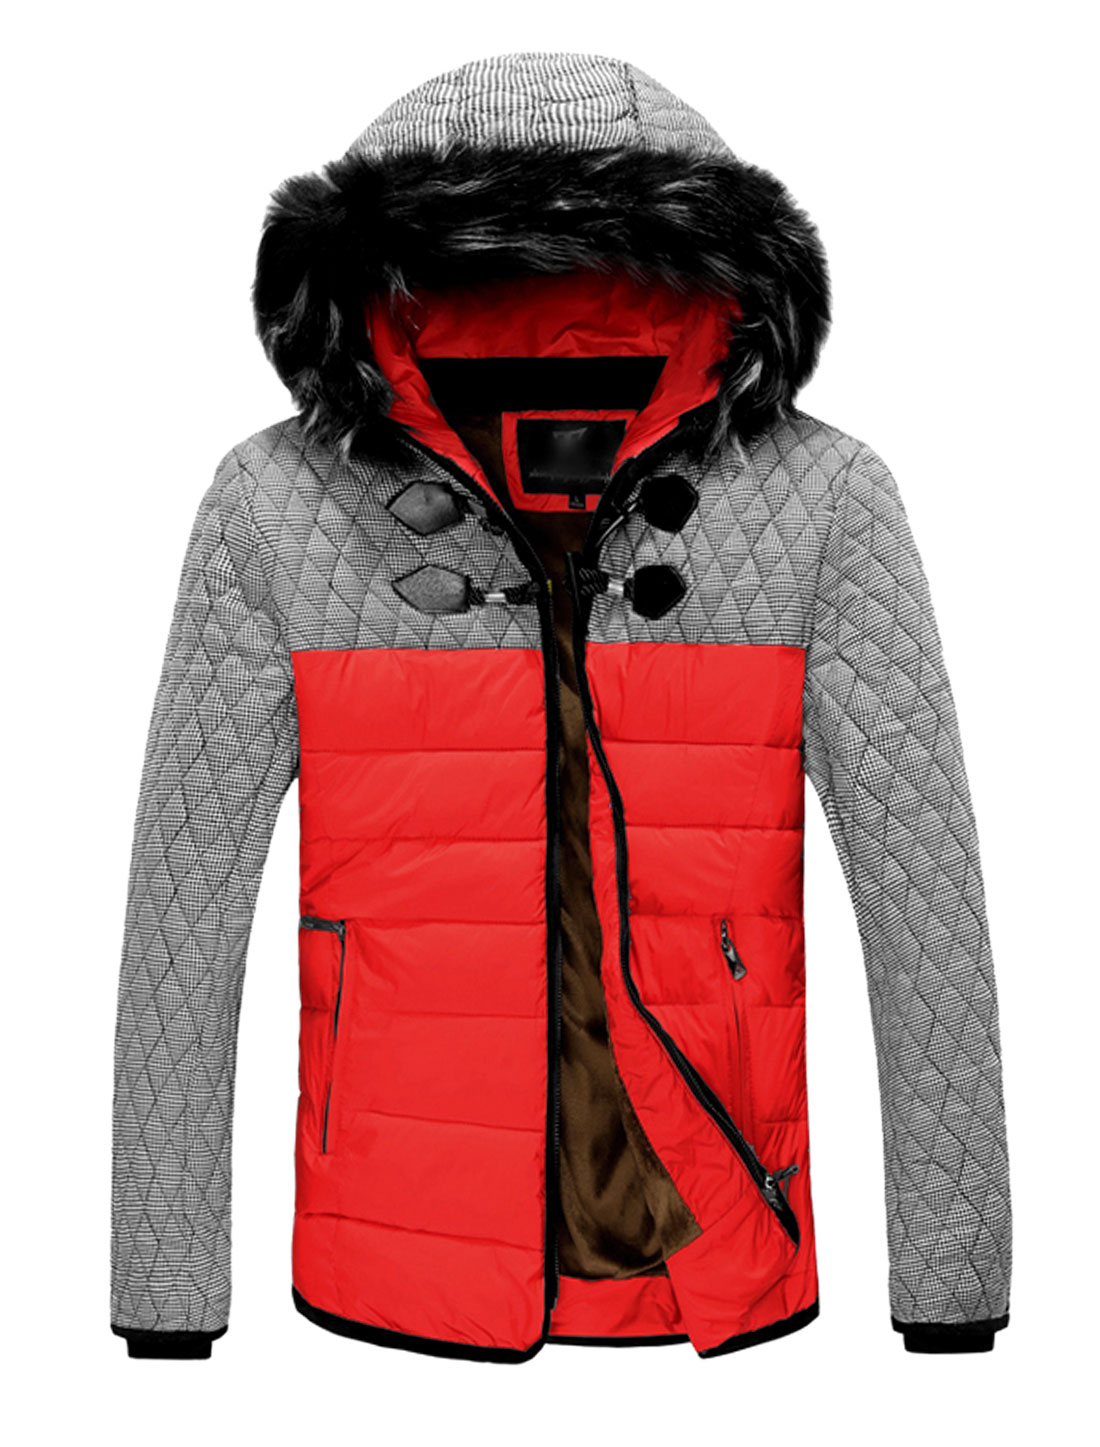 Man Horn Button Detail Long Sleeves Casual Red Hooded Padded Coat M